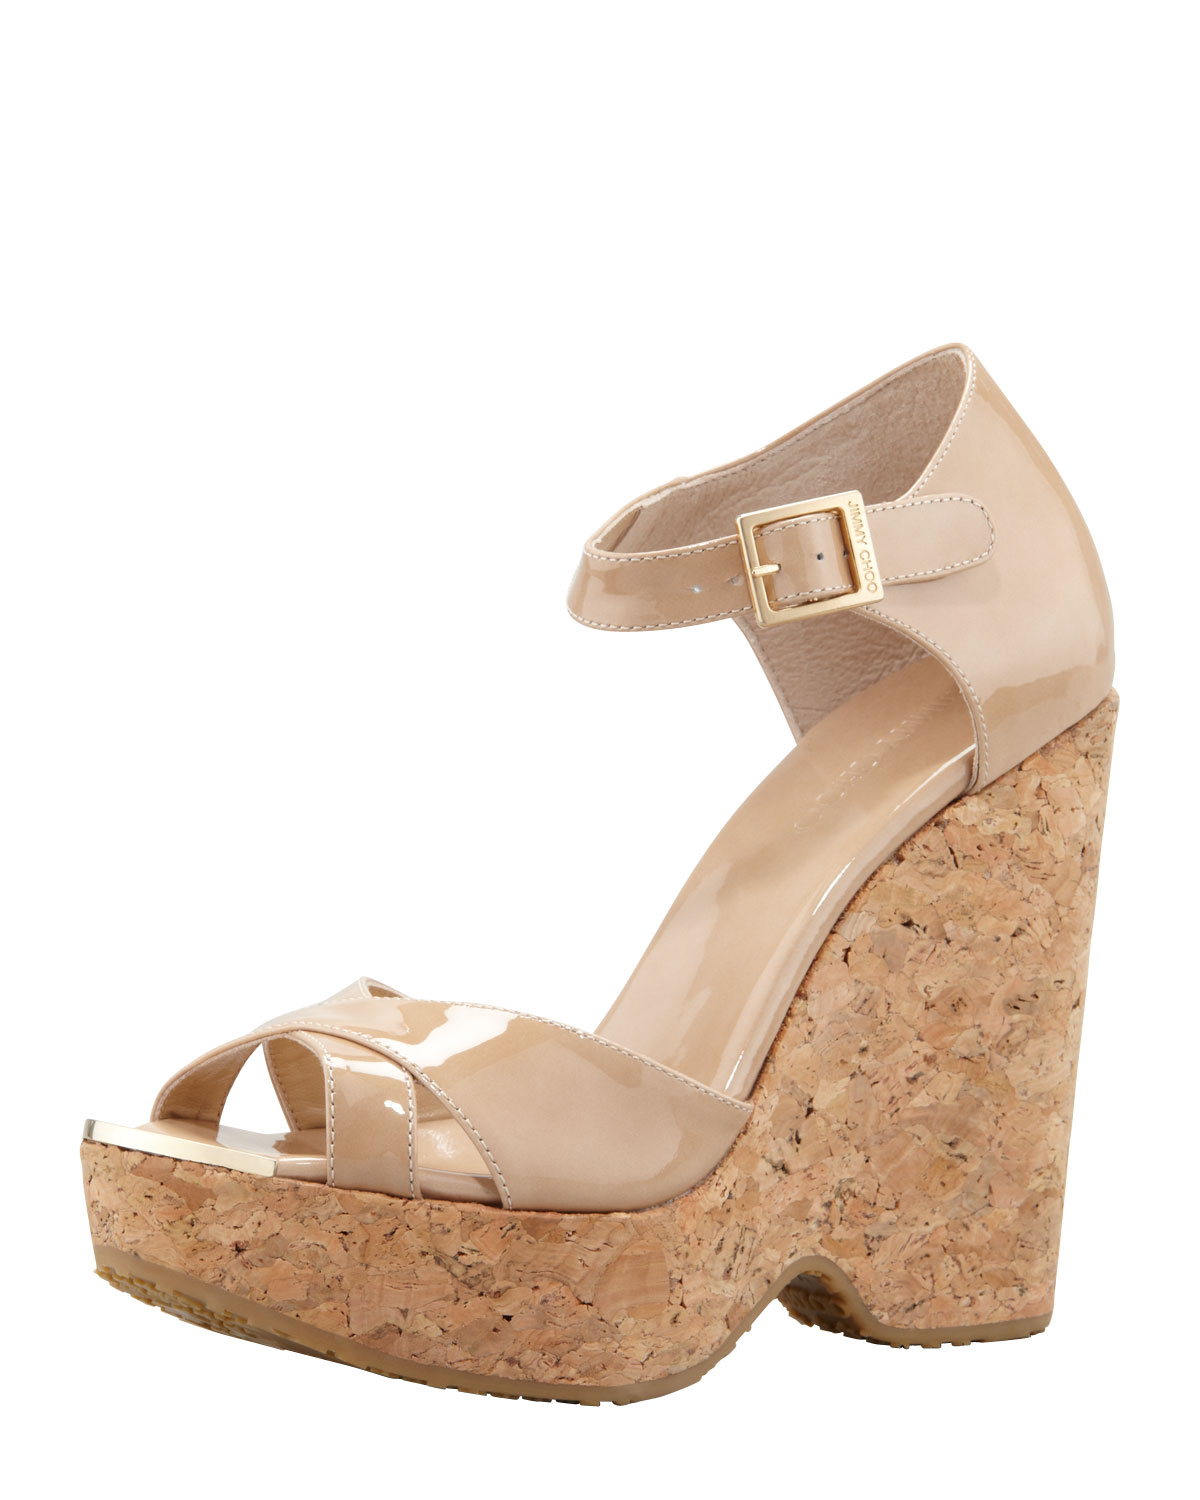 ea58a72d3a55 Lyst - Jimmy Choo Pape Patent Wedge Sandal Nude in Natural